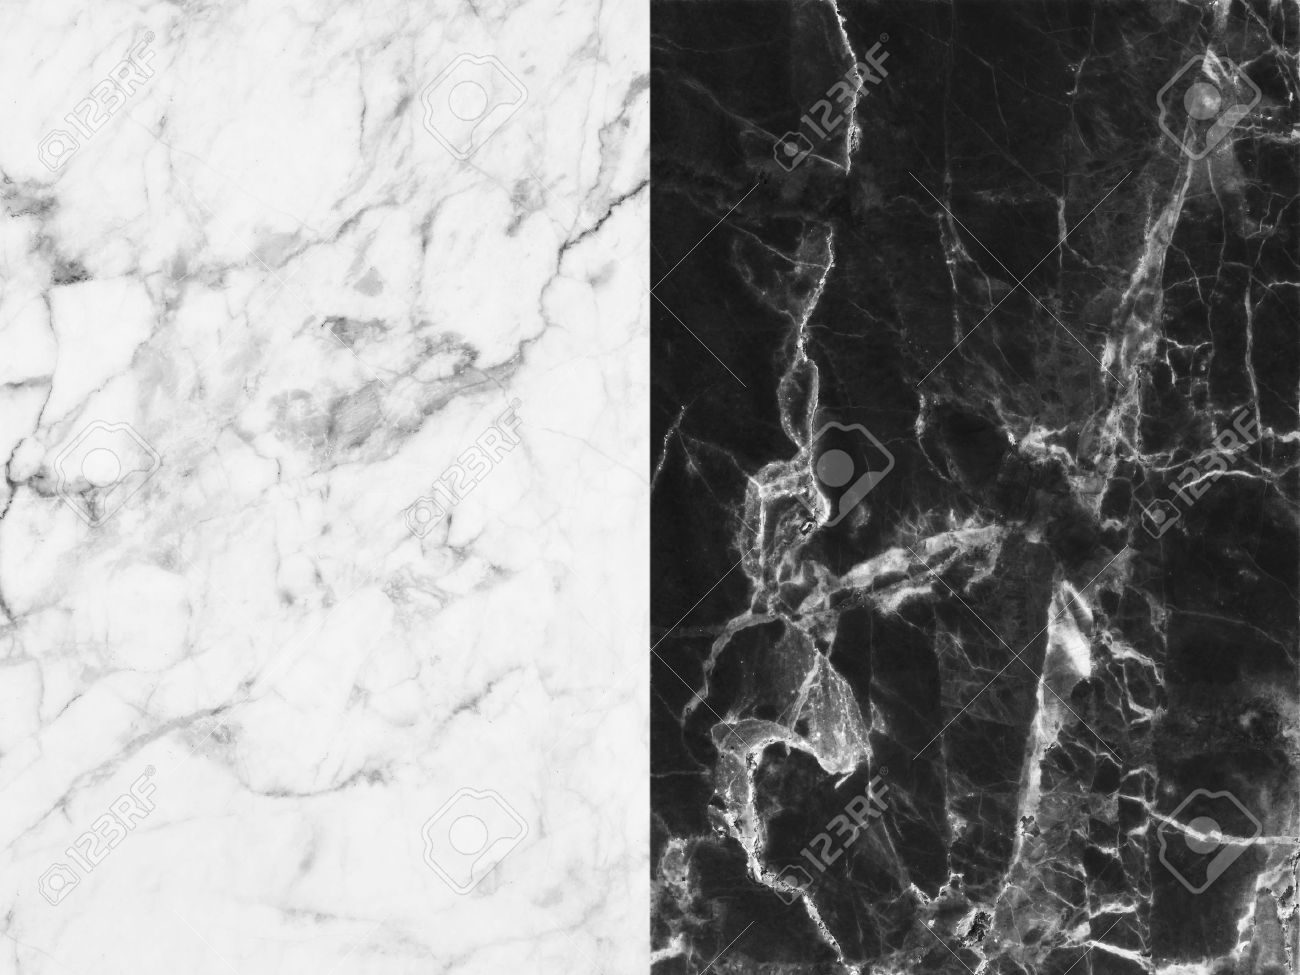 Ordinaire White Marble Patterned Texture Background. Marbles Of Thailand Abstract  Natural Marble Black And White Gray